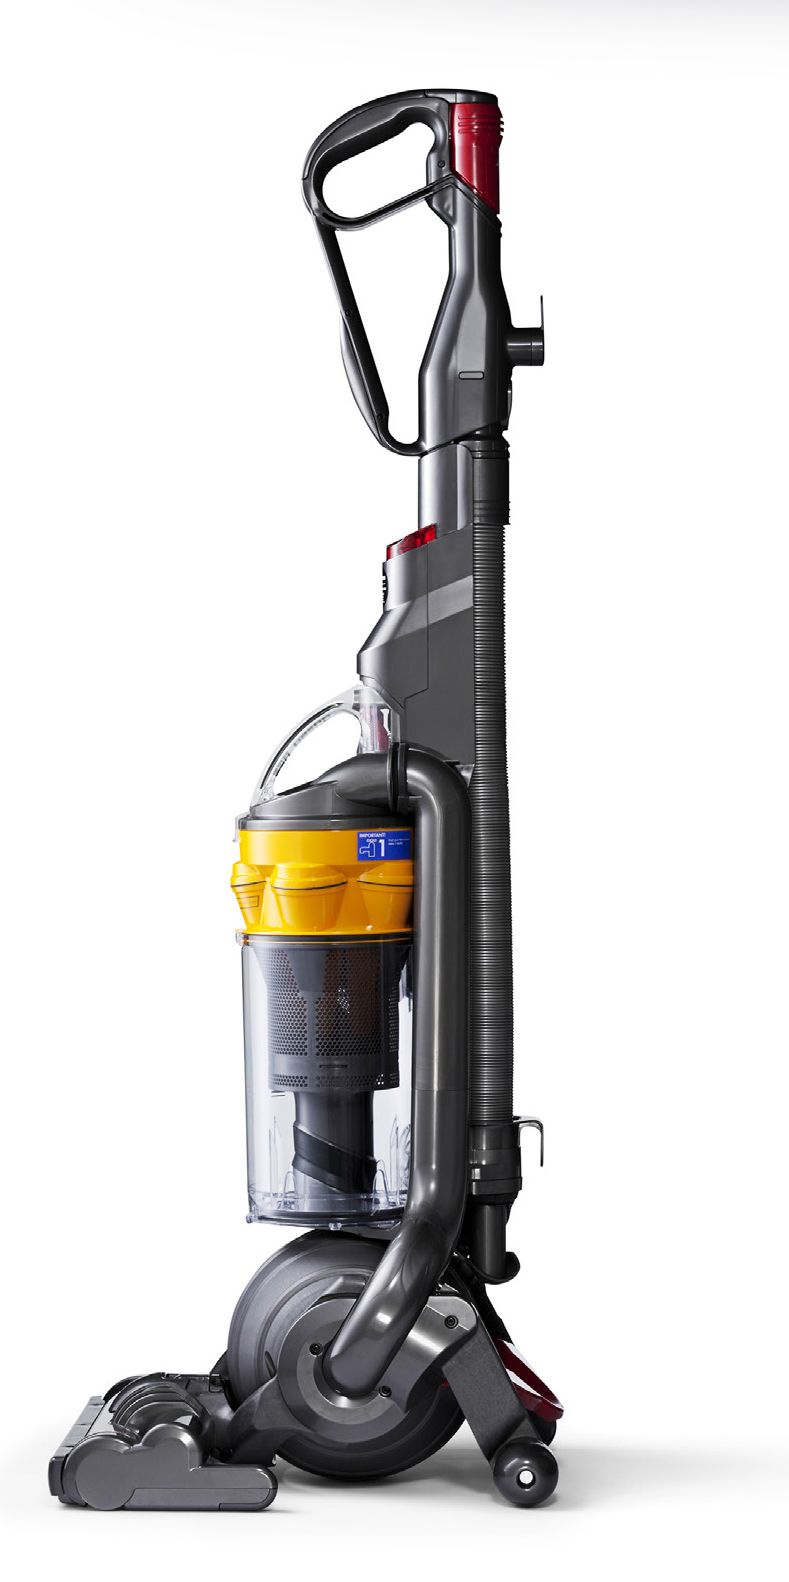 Dyson DC25 Multi Floor Upright Vacuum Cleaner